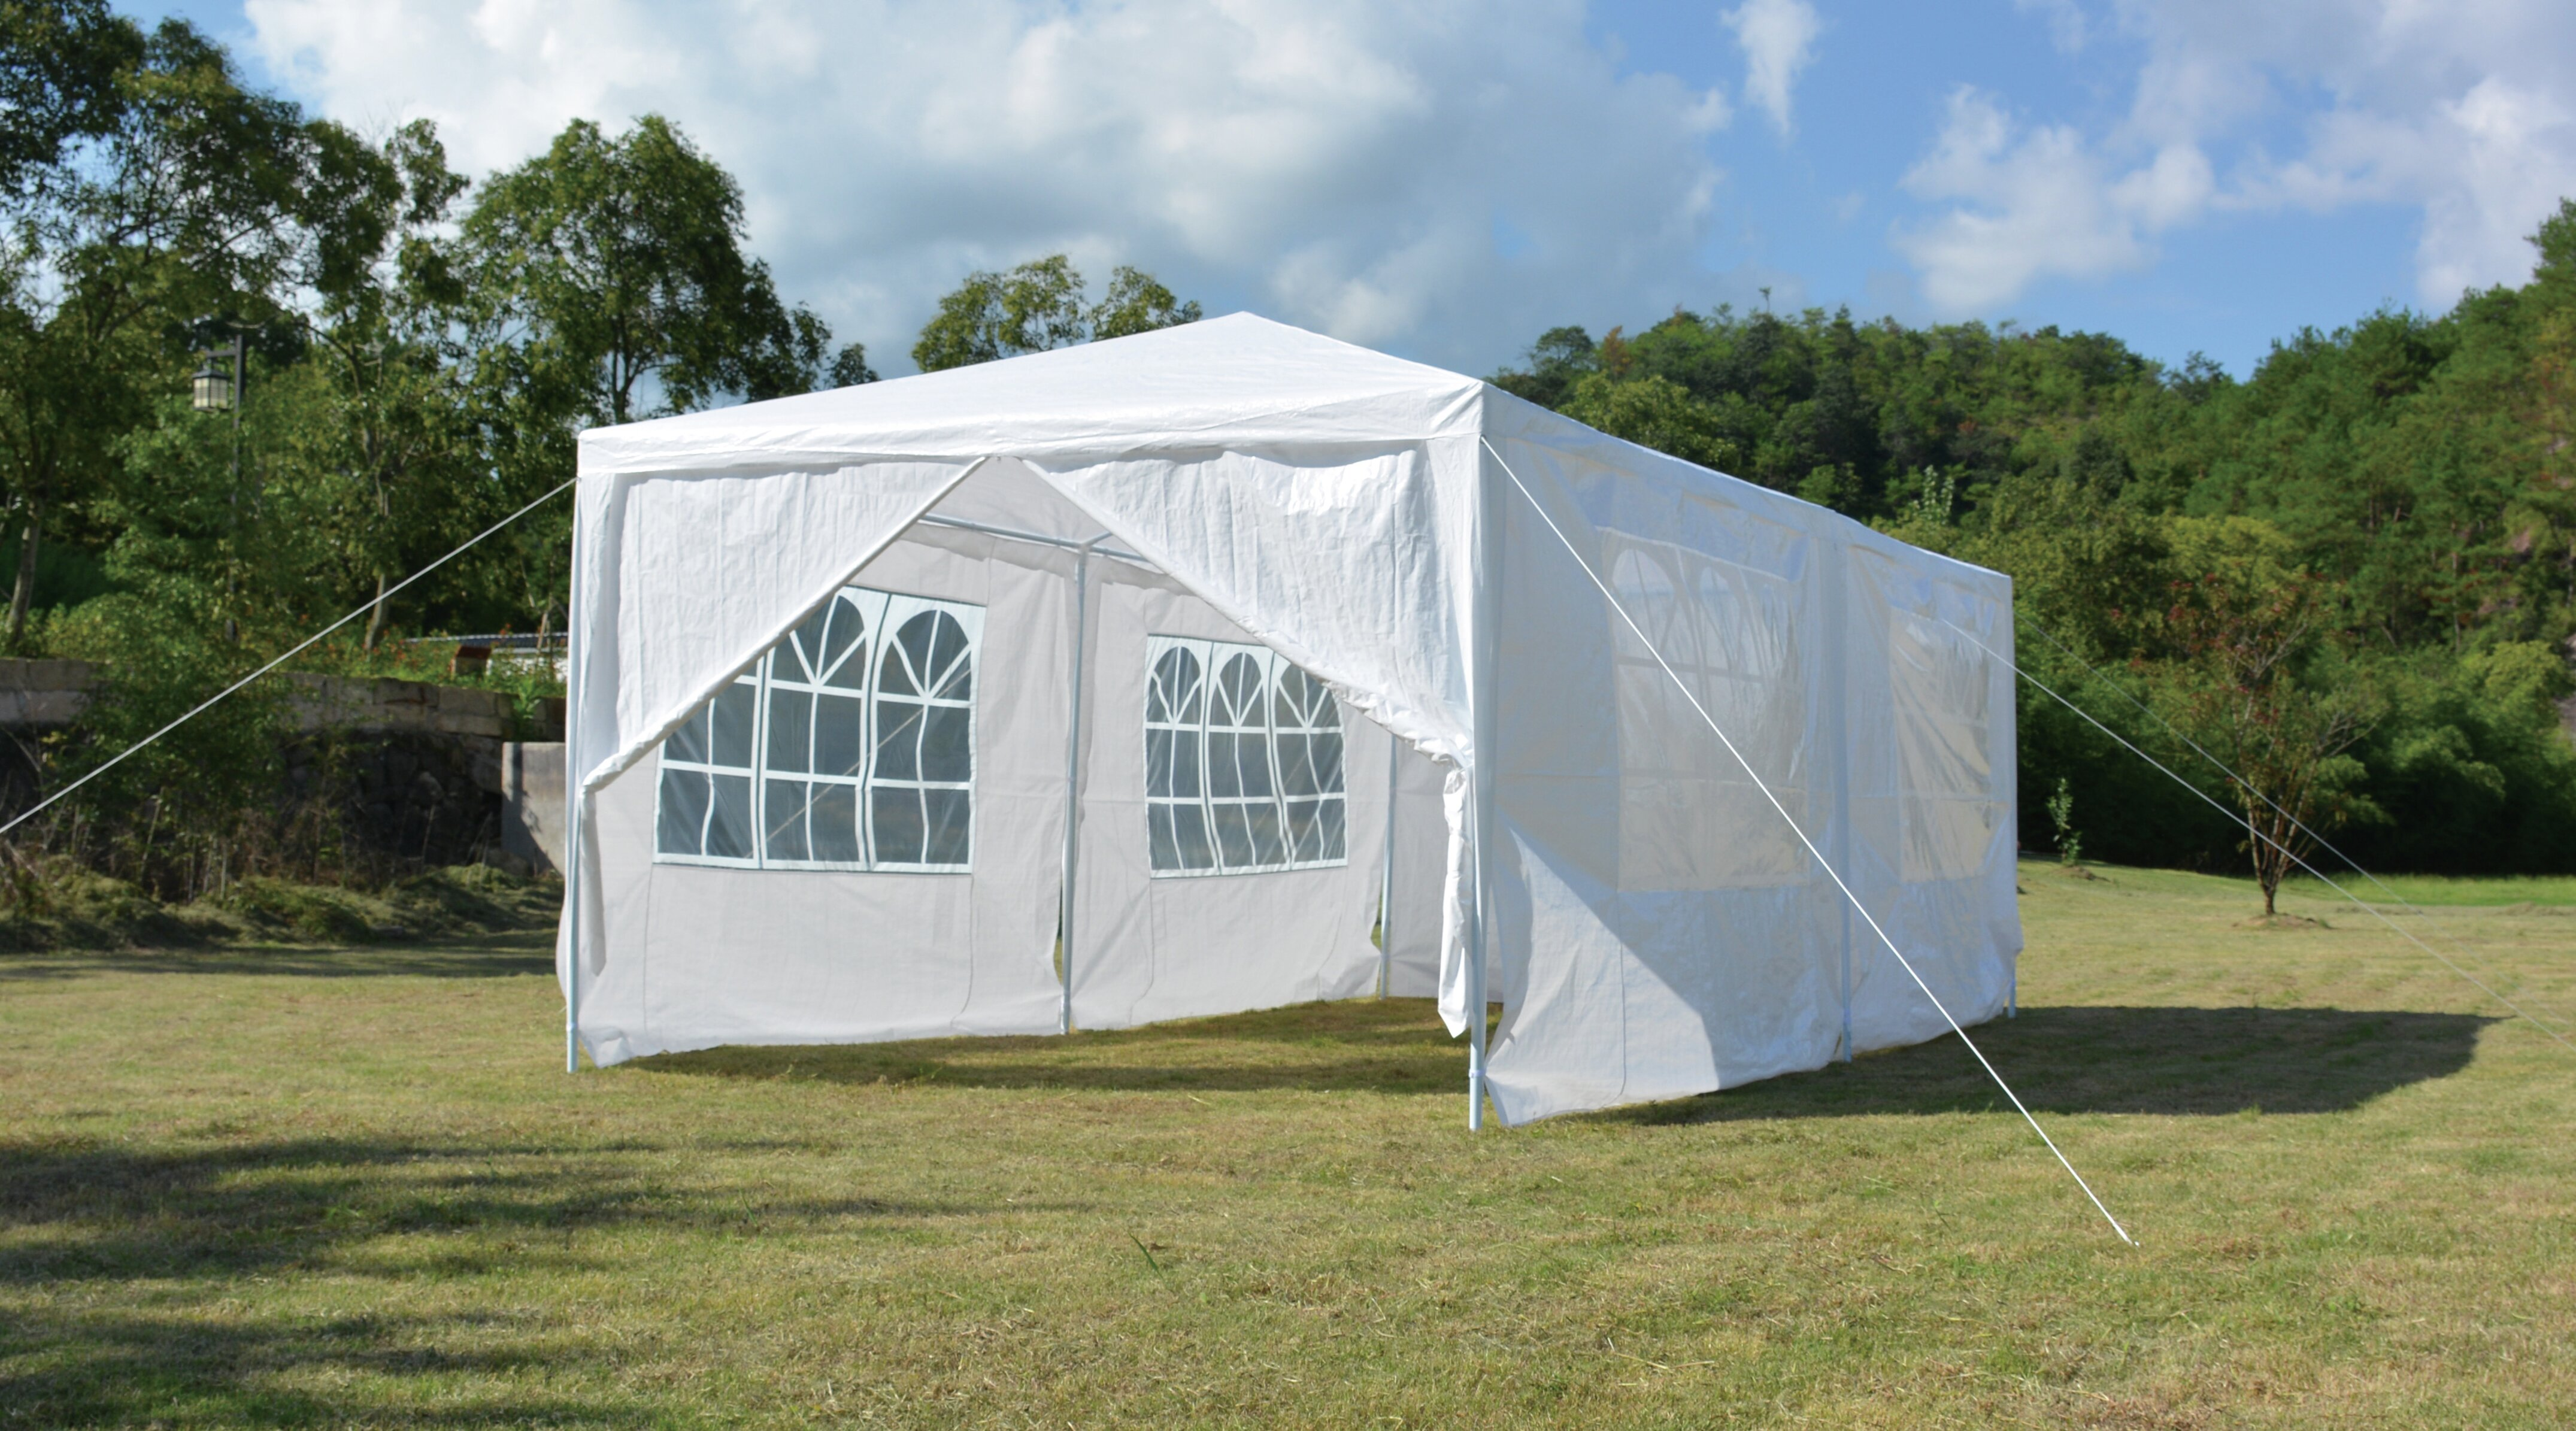 Backyard Expressions 20 Ft W X 10 Ft D Steel Party Tent Reviews Wayfair